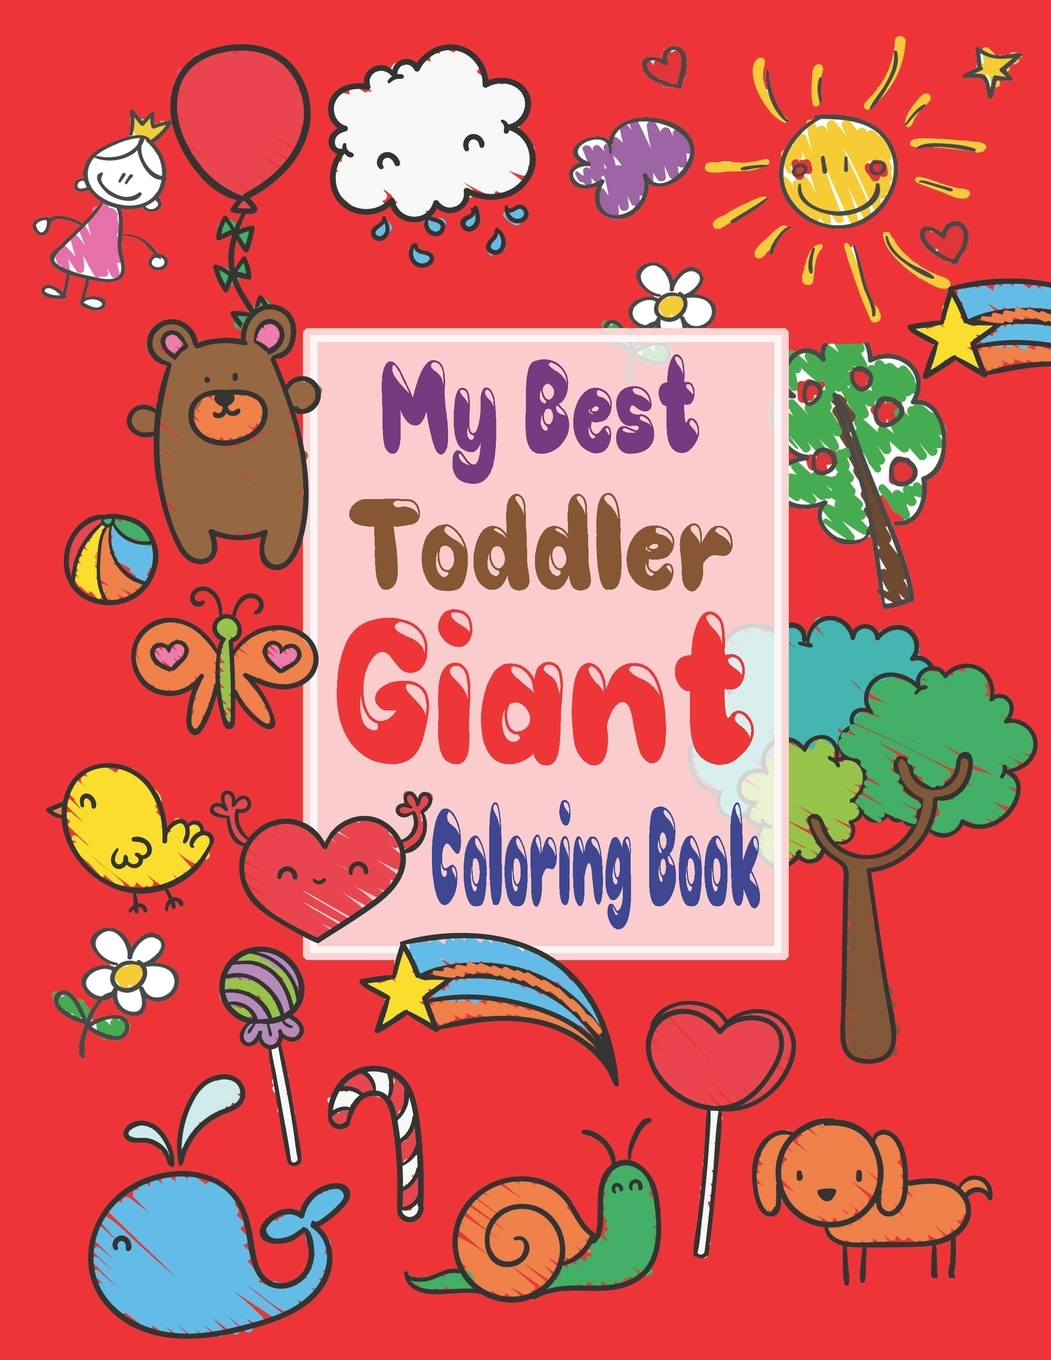 My Best Toddler Giant Coloring Book : My Best Toddler Giant Coloring Book, Coloring  Books For Kids